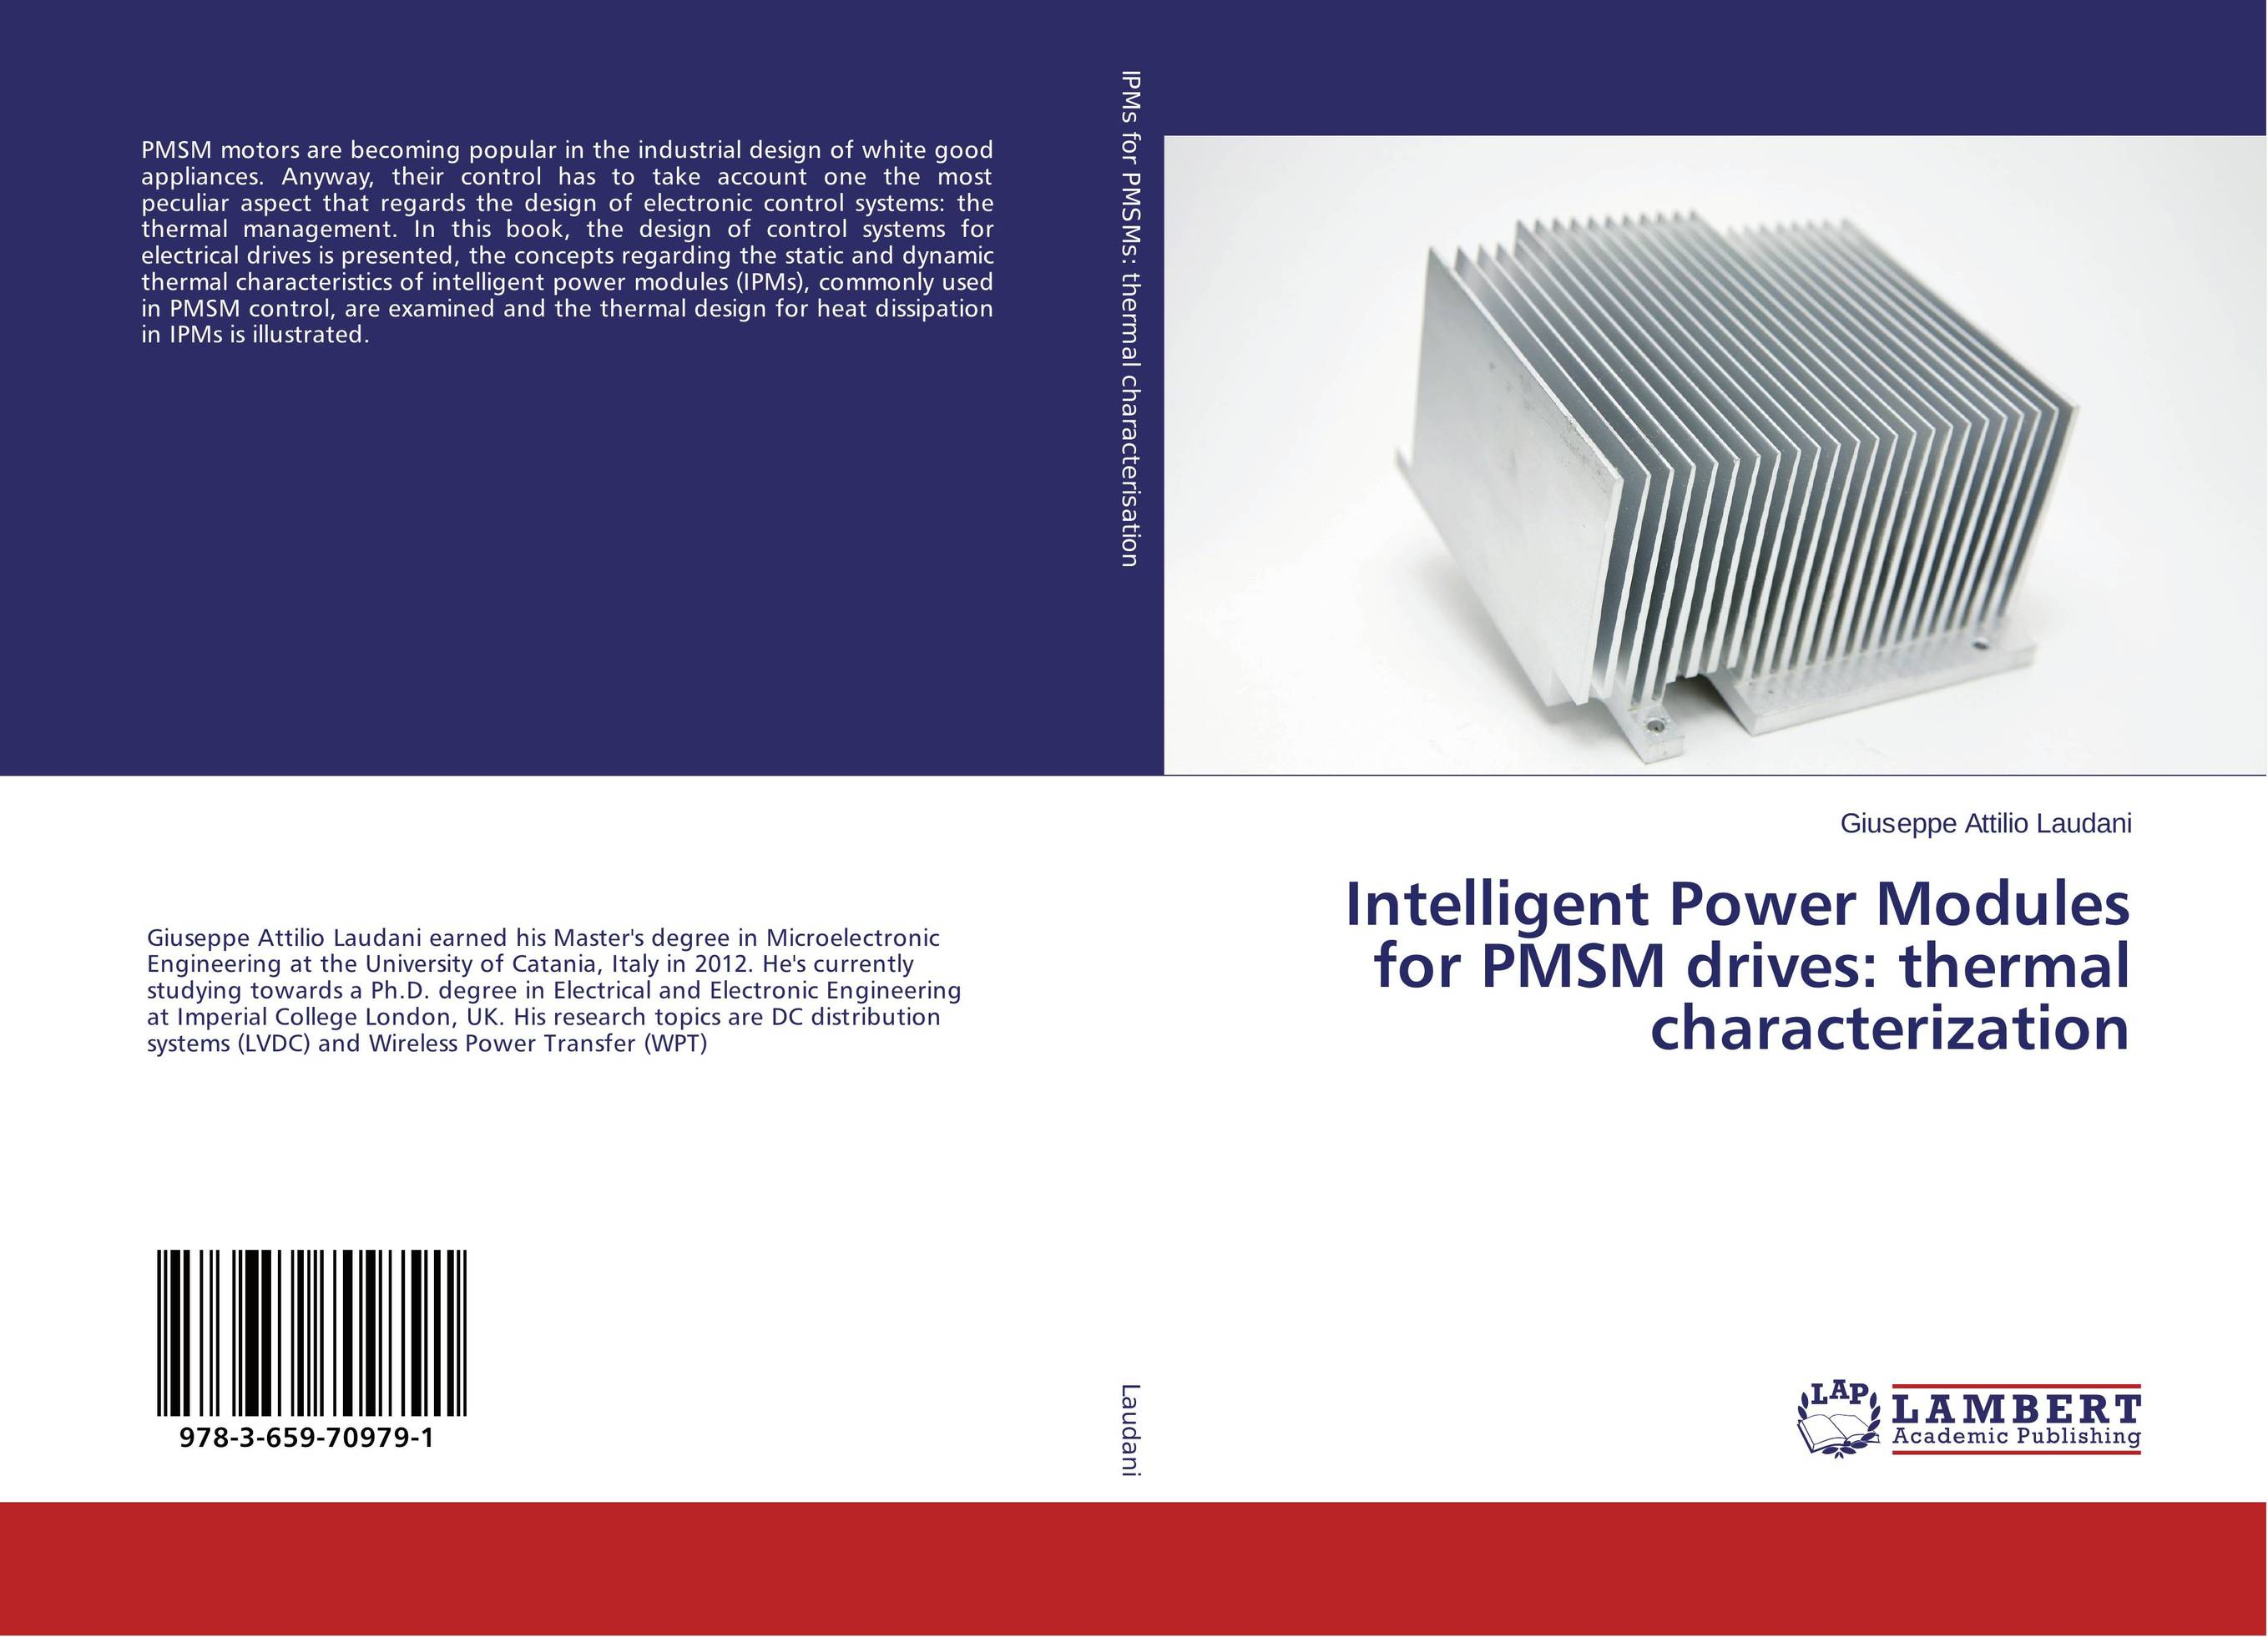 Intelligent Power Modules for PMSM drives: thermal characterization